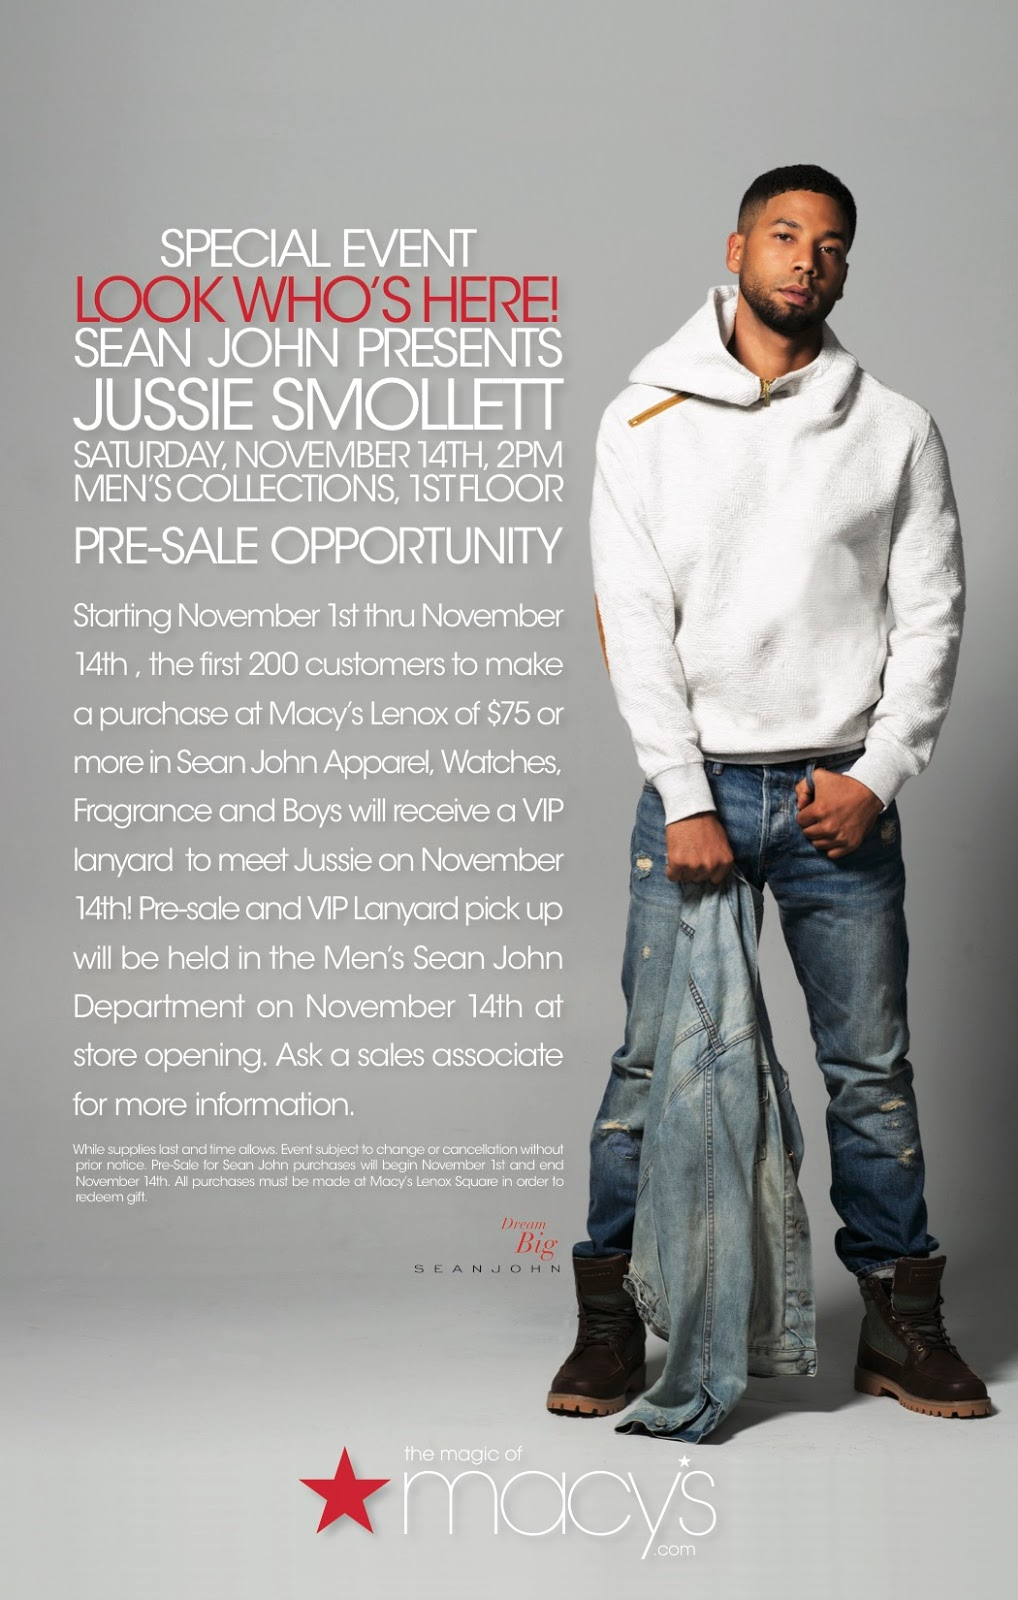 jussie smollett at lenox square November 14